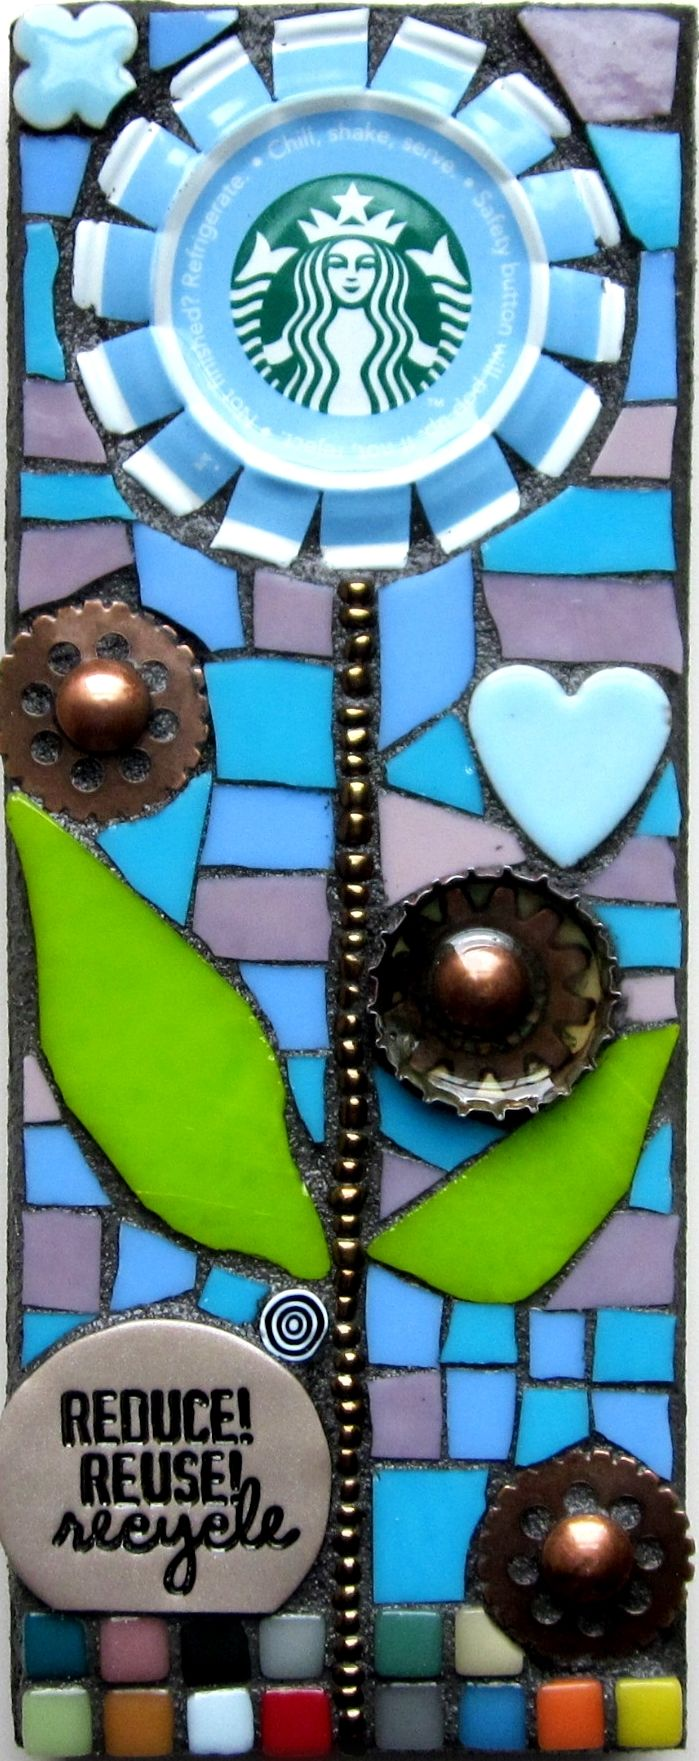 STARBUCKS COFFEE GEAR FLOWER MOSAIC. UPCYCLED ART. RECYCLED ART.